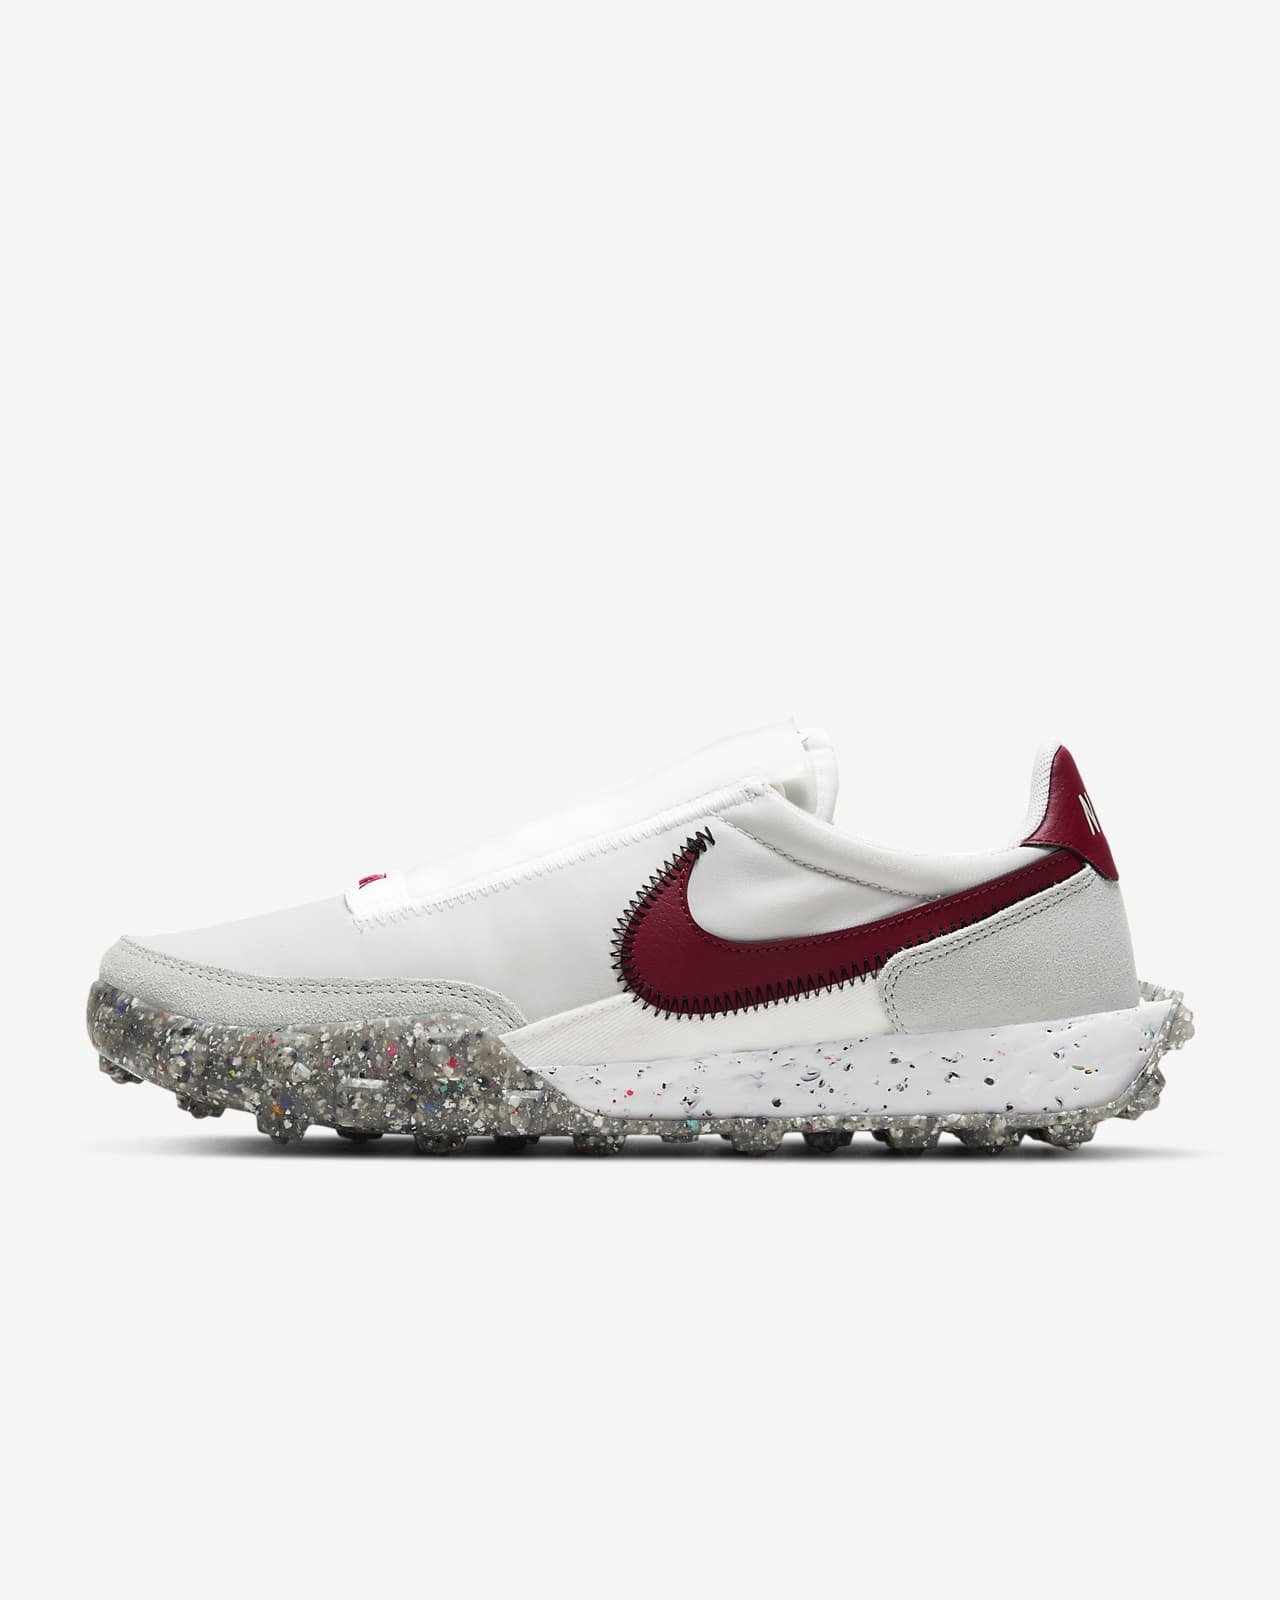 Nike Waffle Racer Crater 女鞋